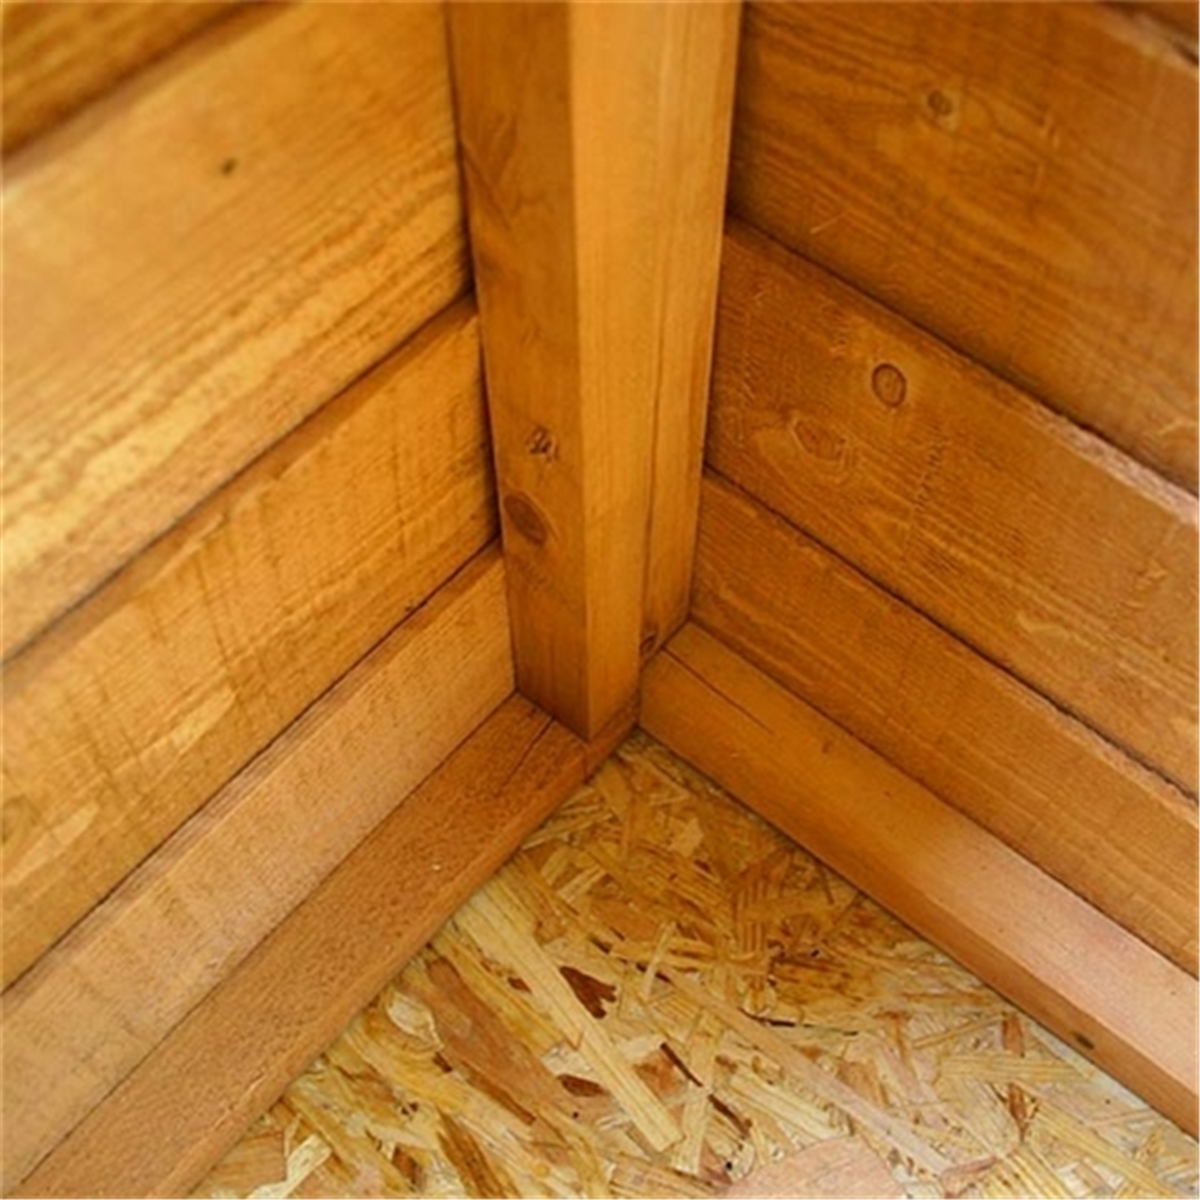 Kiala what thickness osb for shed floor for What size osb for exterior walls